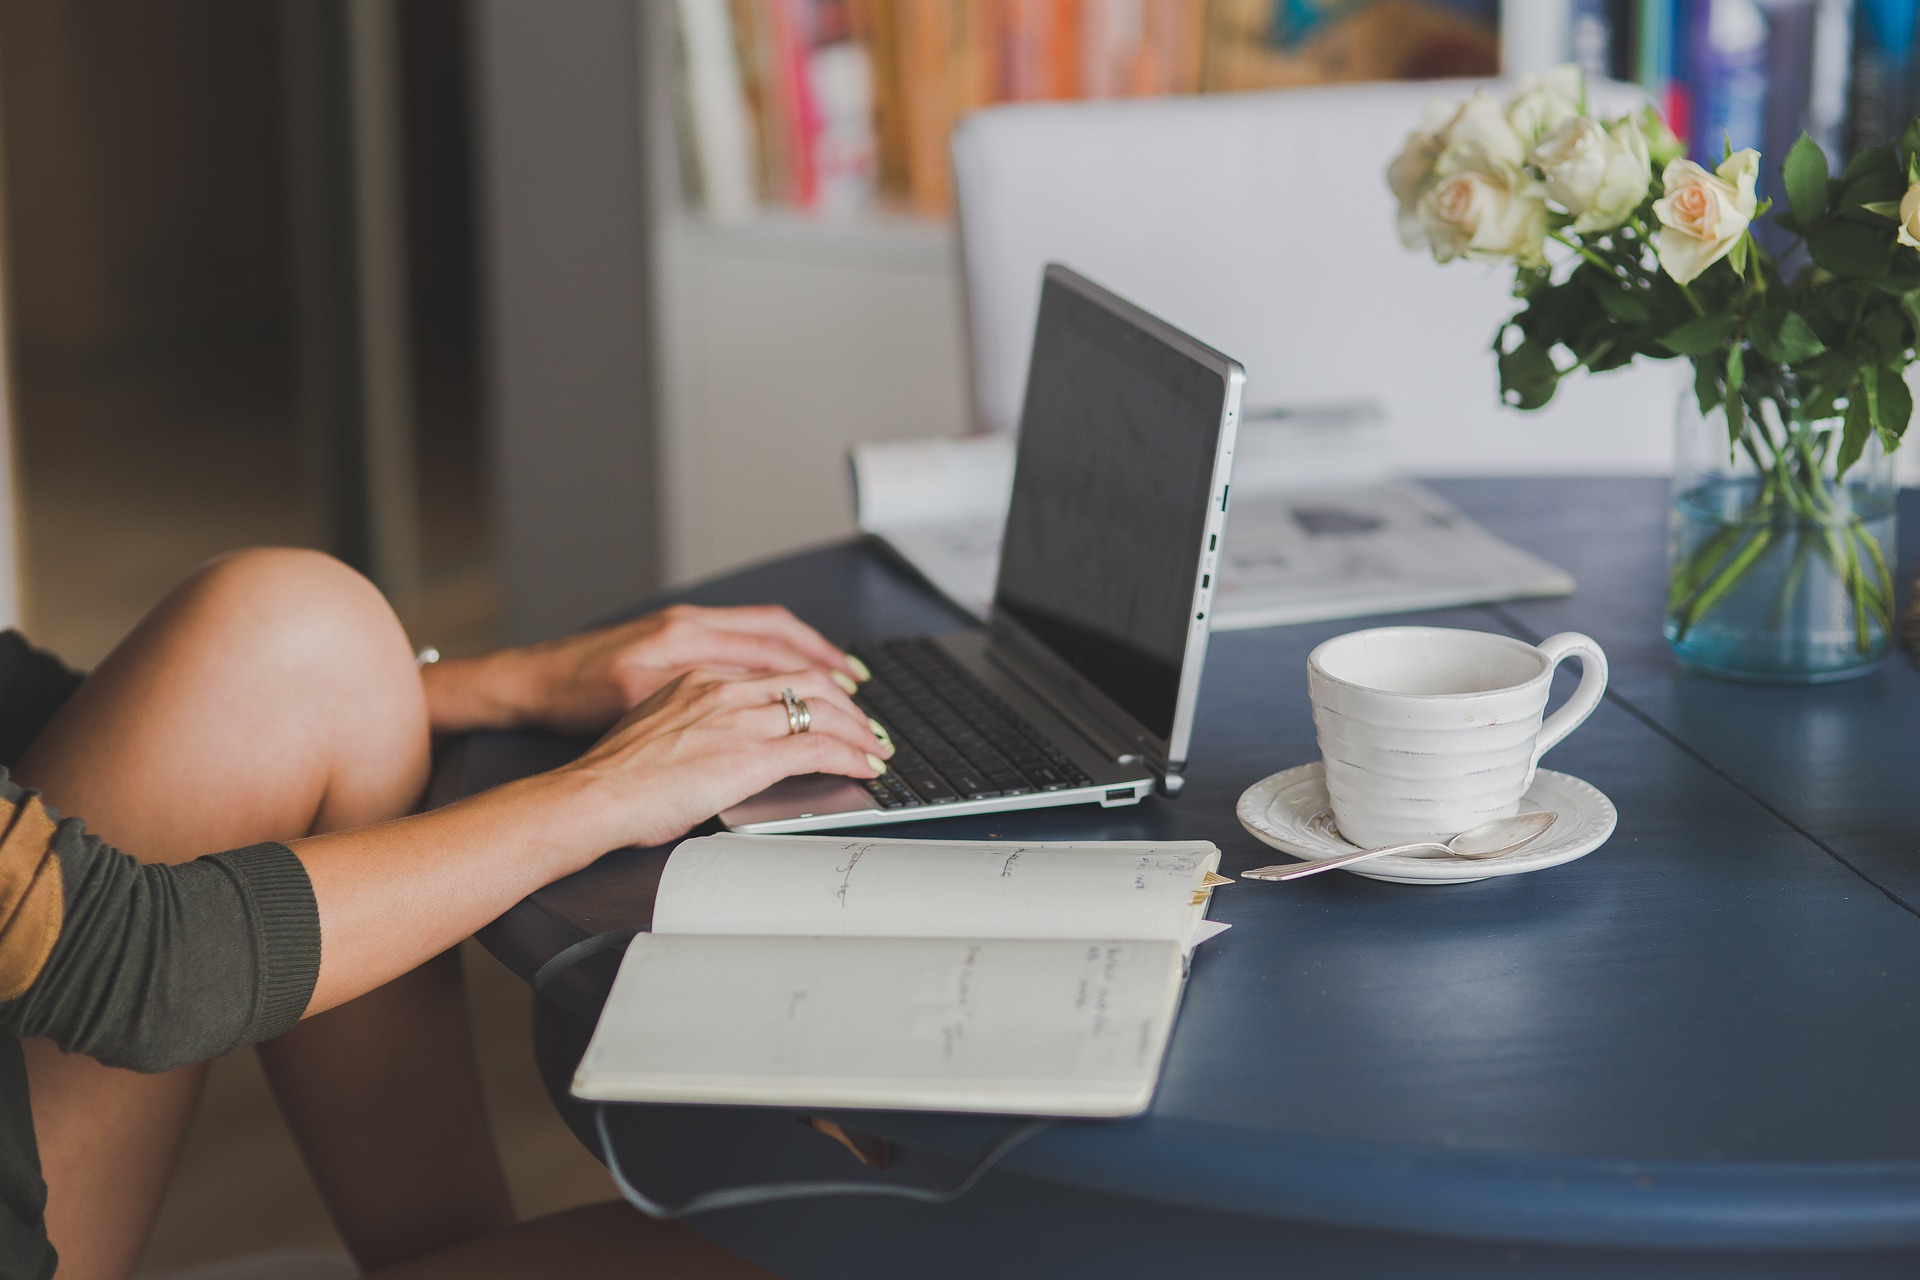 Woman sitting typing her SEO business blog on a laptop with a cup of tea and a notebook open on the table.